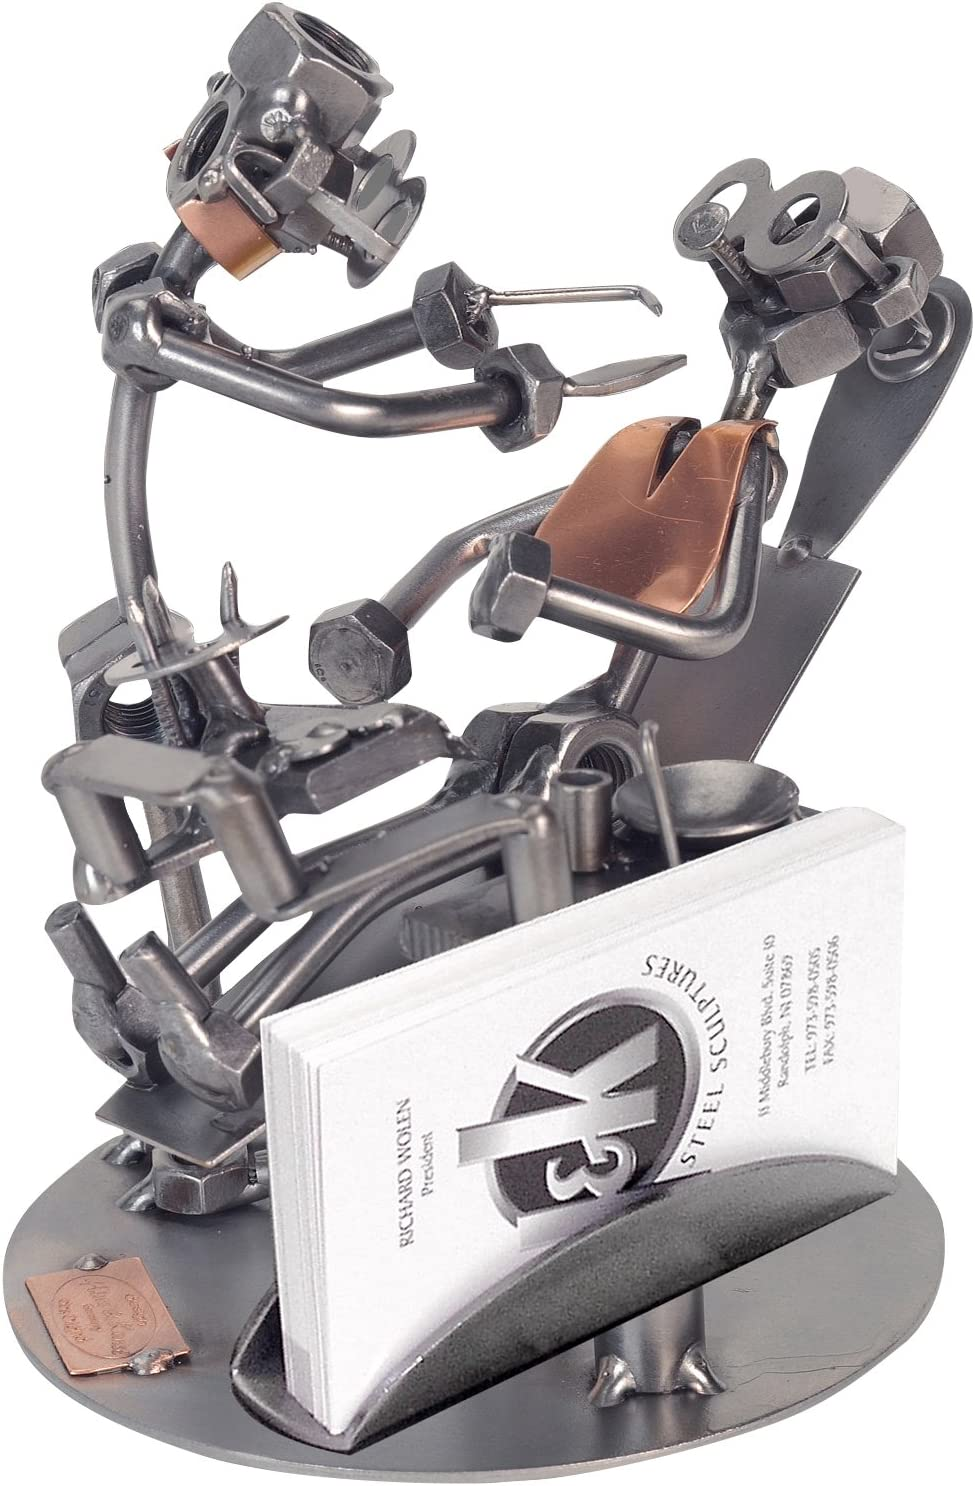 H K SCULPTURES 240BCPR Dentist Business Nuts Card and Holder Ranking TOP2 Popular products B